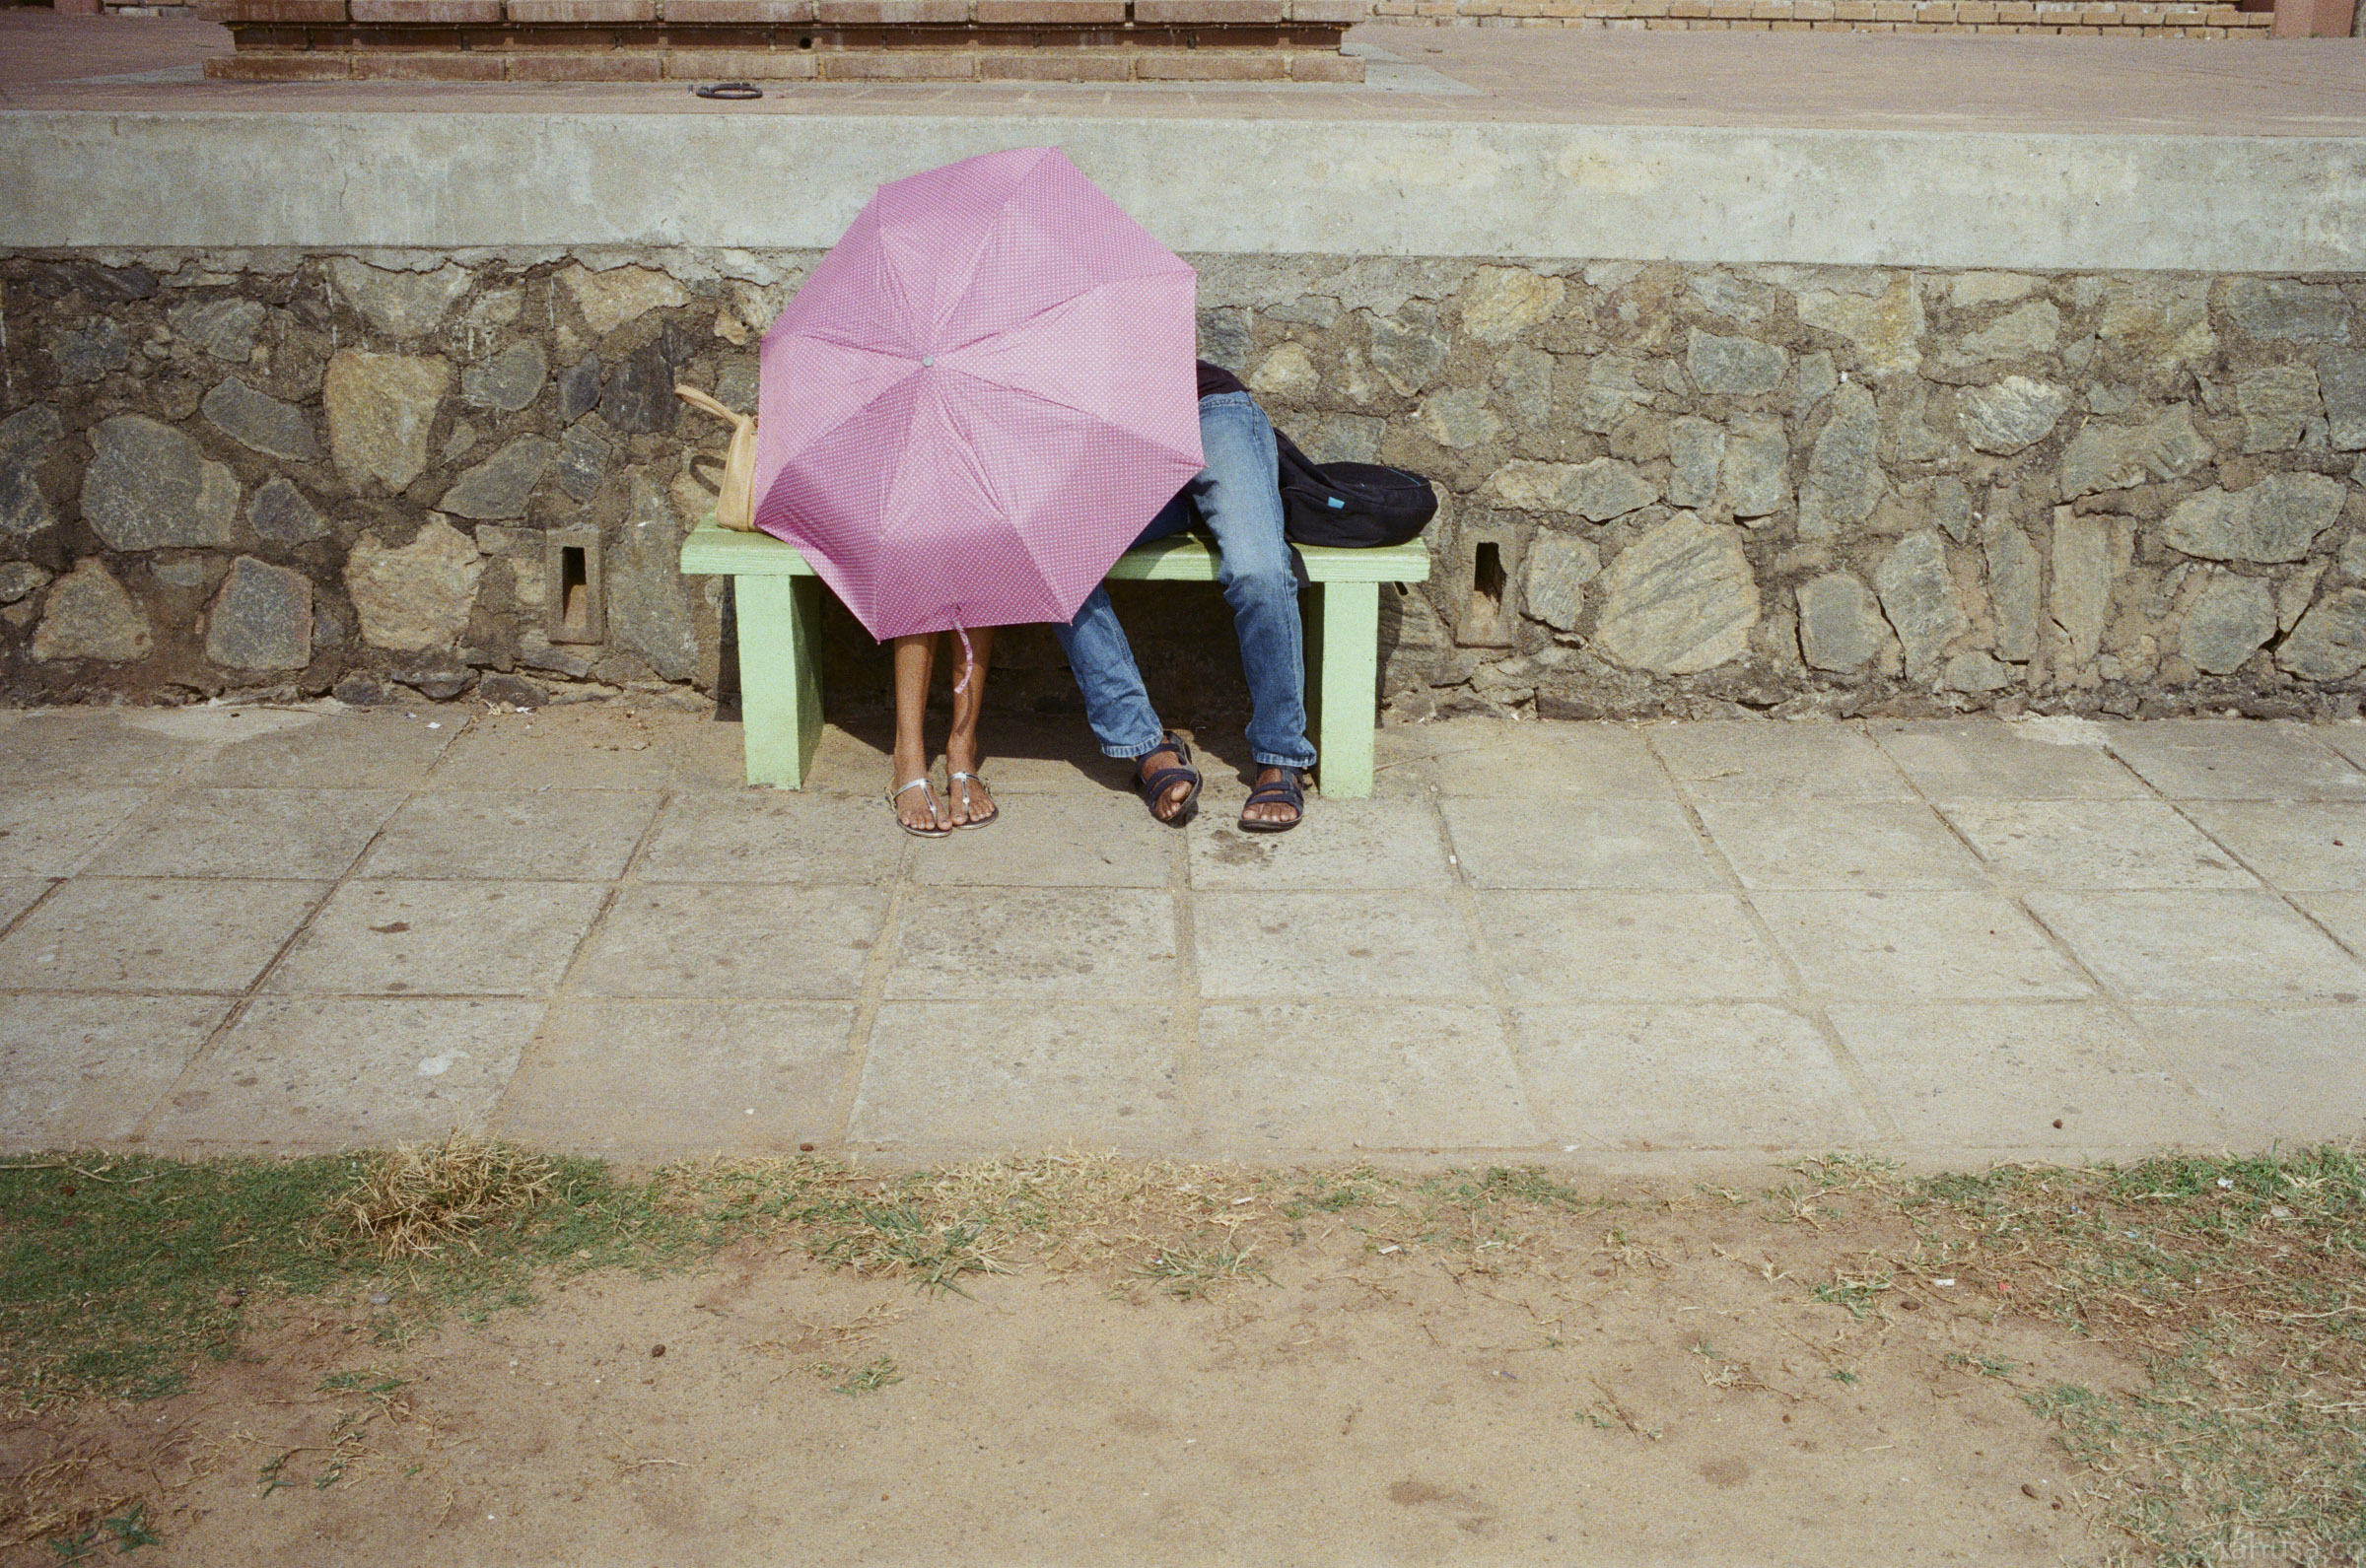 under-the-same-umbrella-love-couple-documentary-in-sri-lanka-colombo-galle-face-green-local-life-kodak-supergold-400-iso400-Leica-summilux-35mm-f1.4-FLE-ASPH